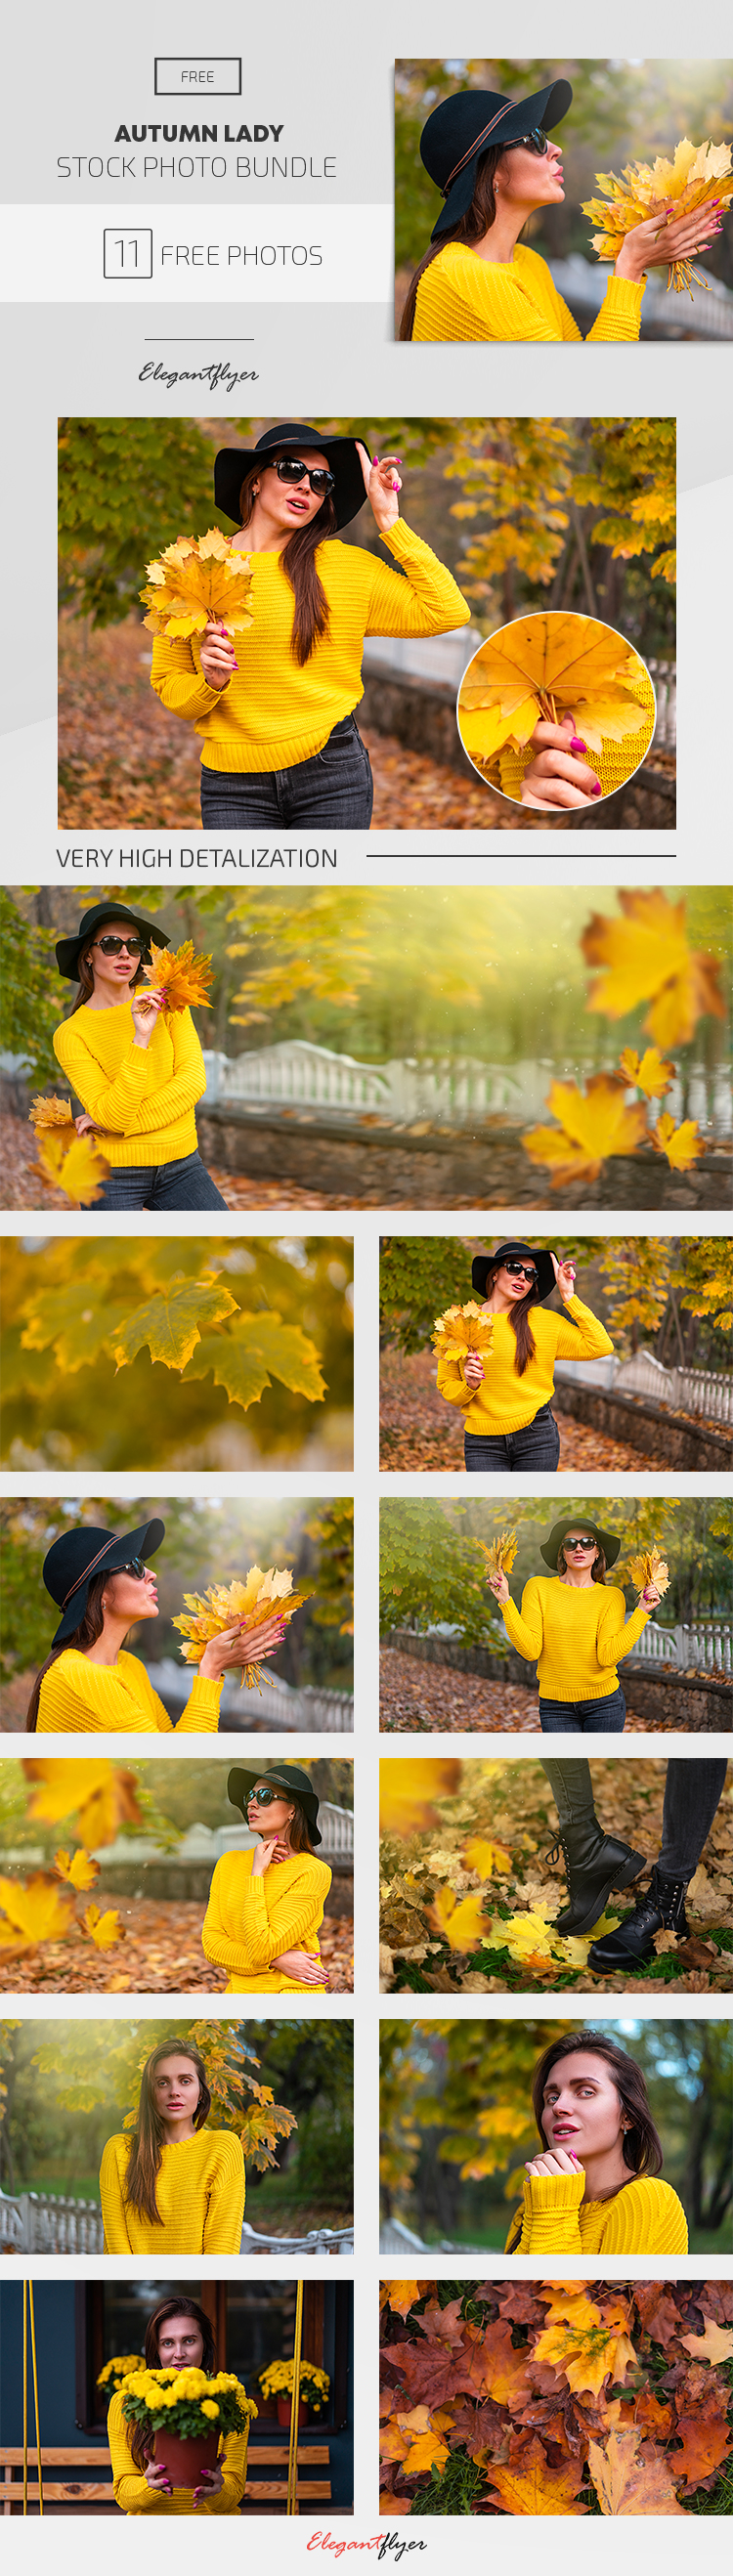 10+ Free Autumn Lady Stock Photos Bundle